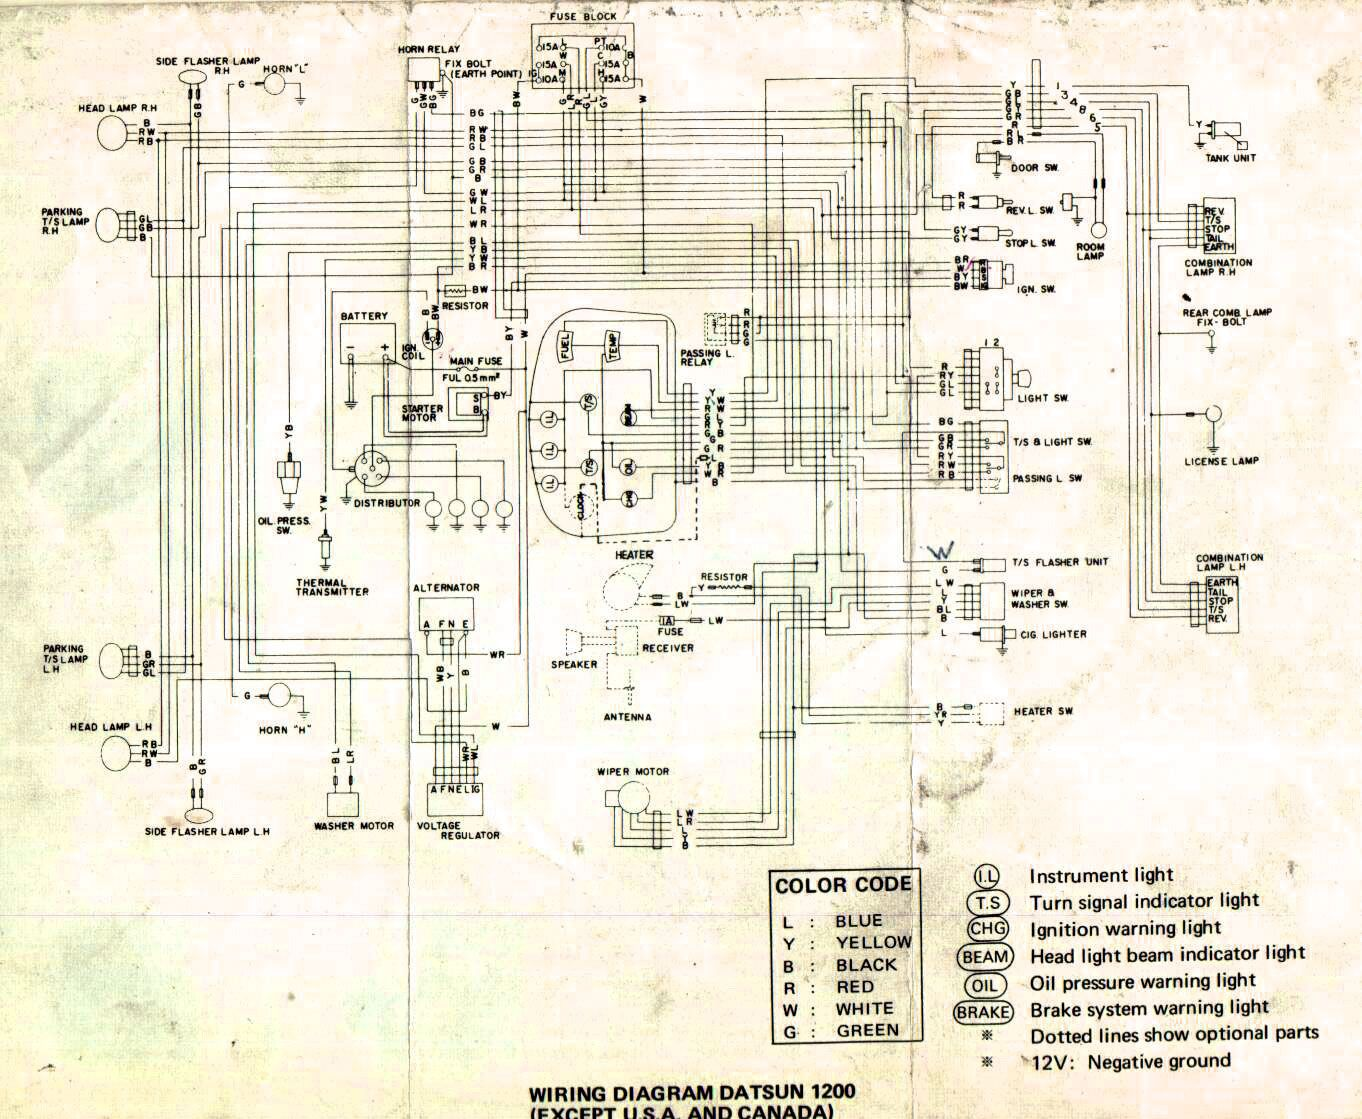 medium resolution of wiring diagram for nissan 1400 bakkie 8